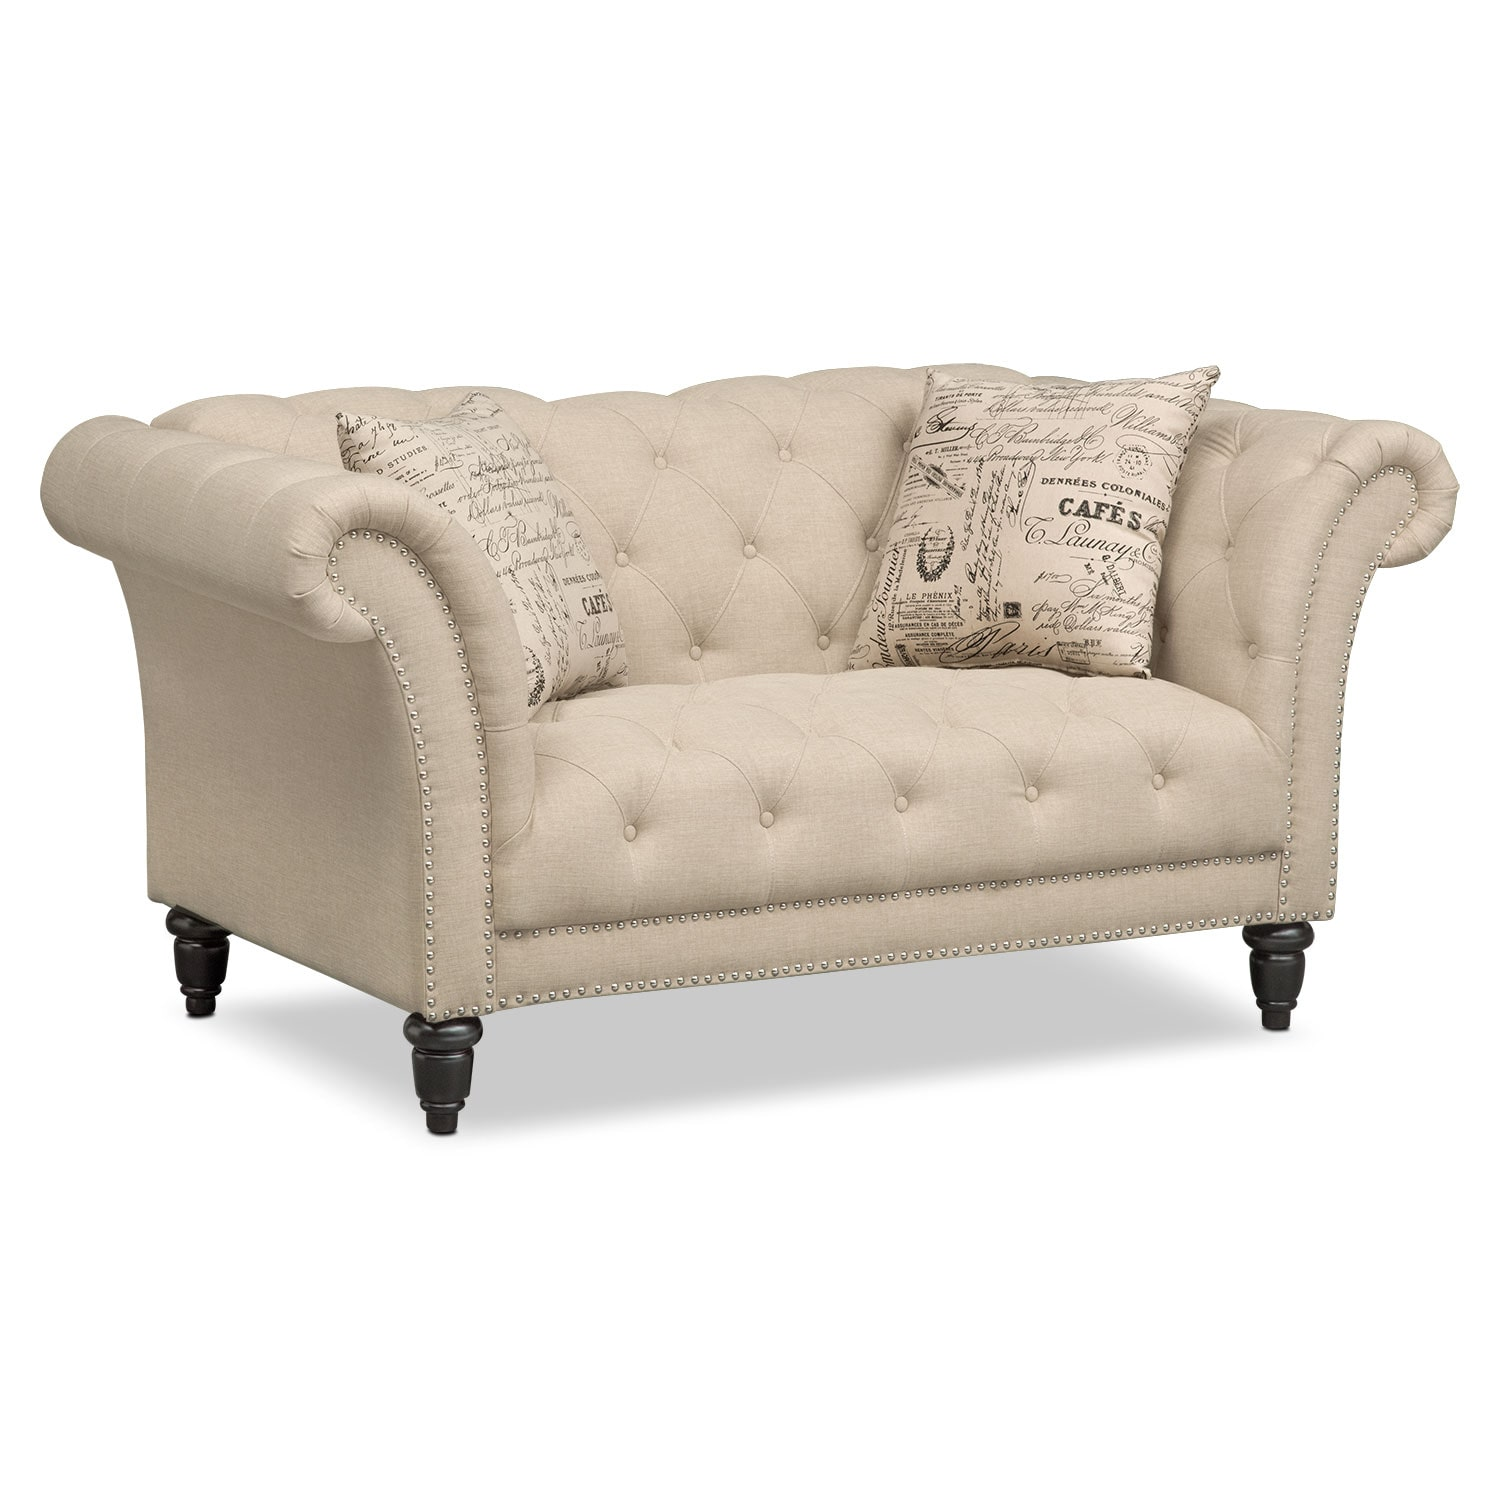 Living Room Furniture - Marisol Loveseat - Beige